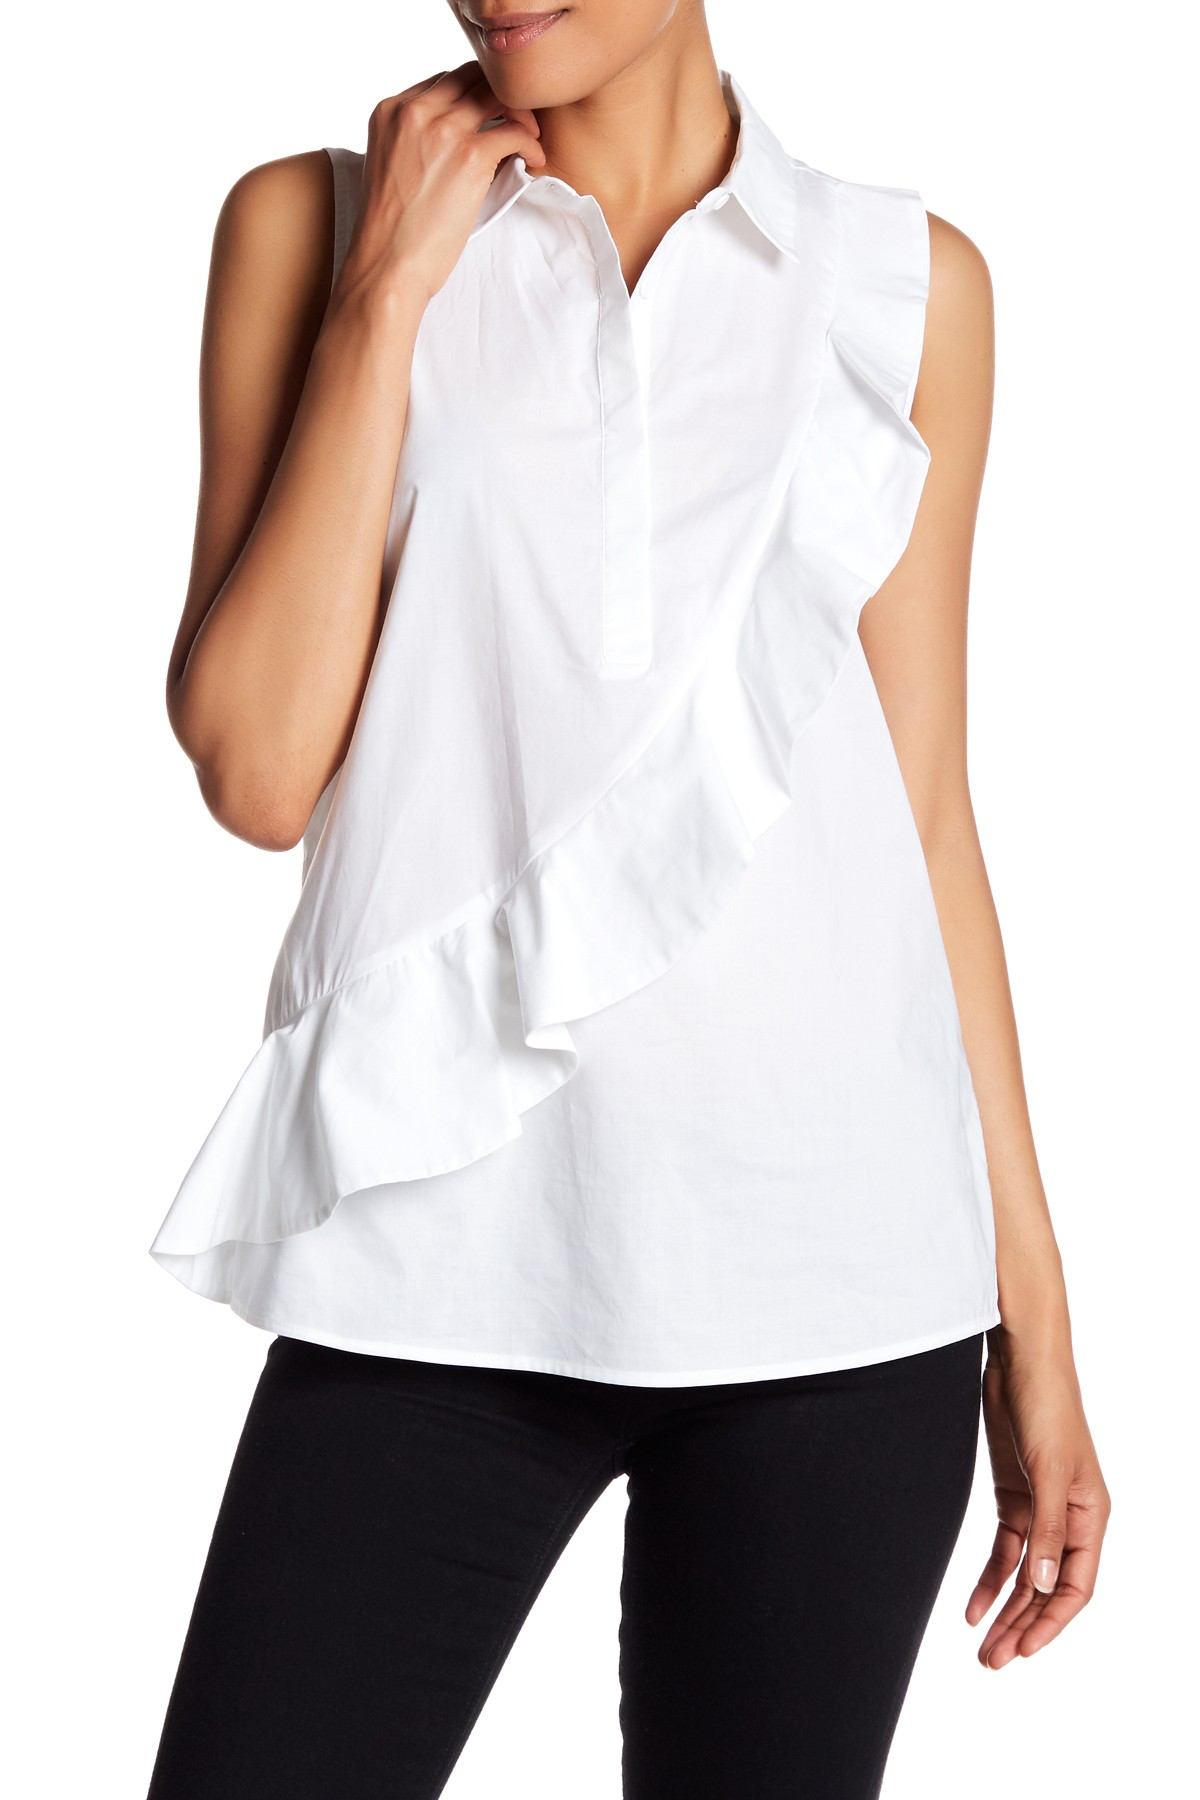 Pleione Ruffle Poplin Shirt ($32.97). It's time to celebrate Momma.  Here is our Nordie's gift guide for items under $50! (Image: Nordstrom)